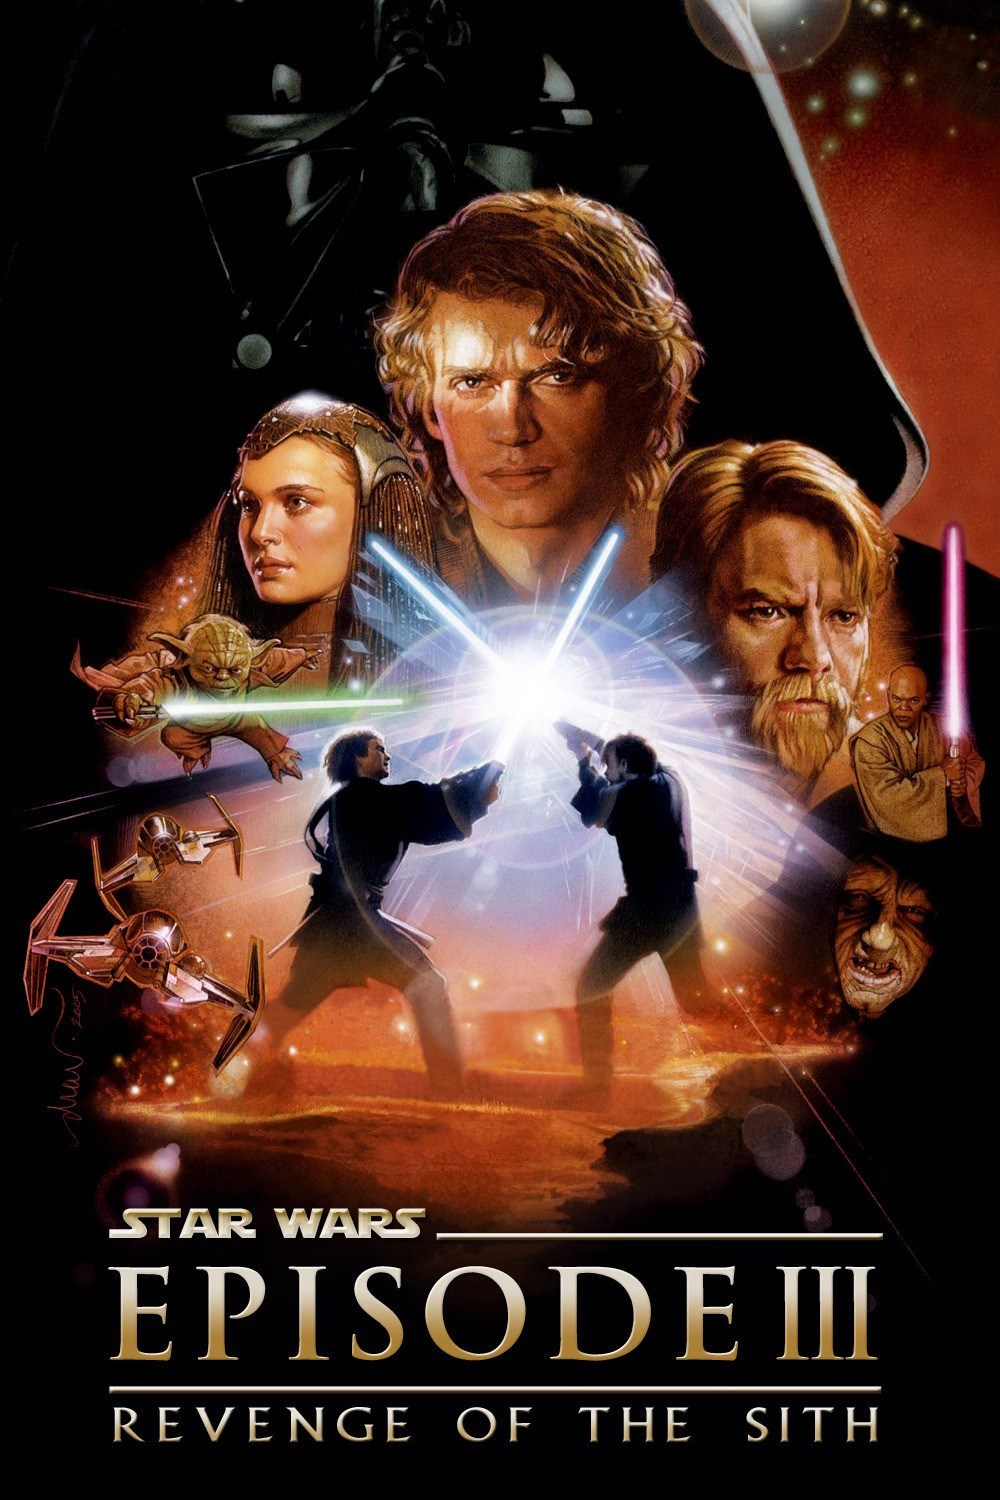 Star Wars Episode III: Revenge of the Sith 2005